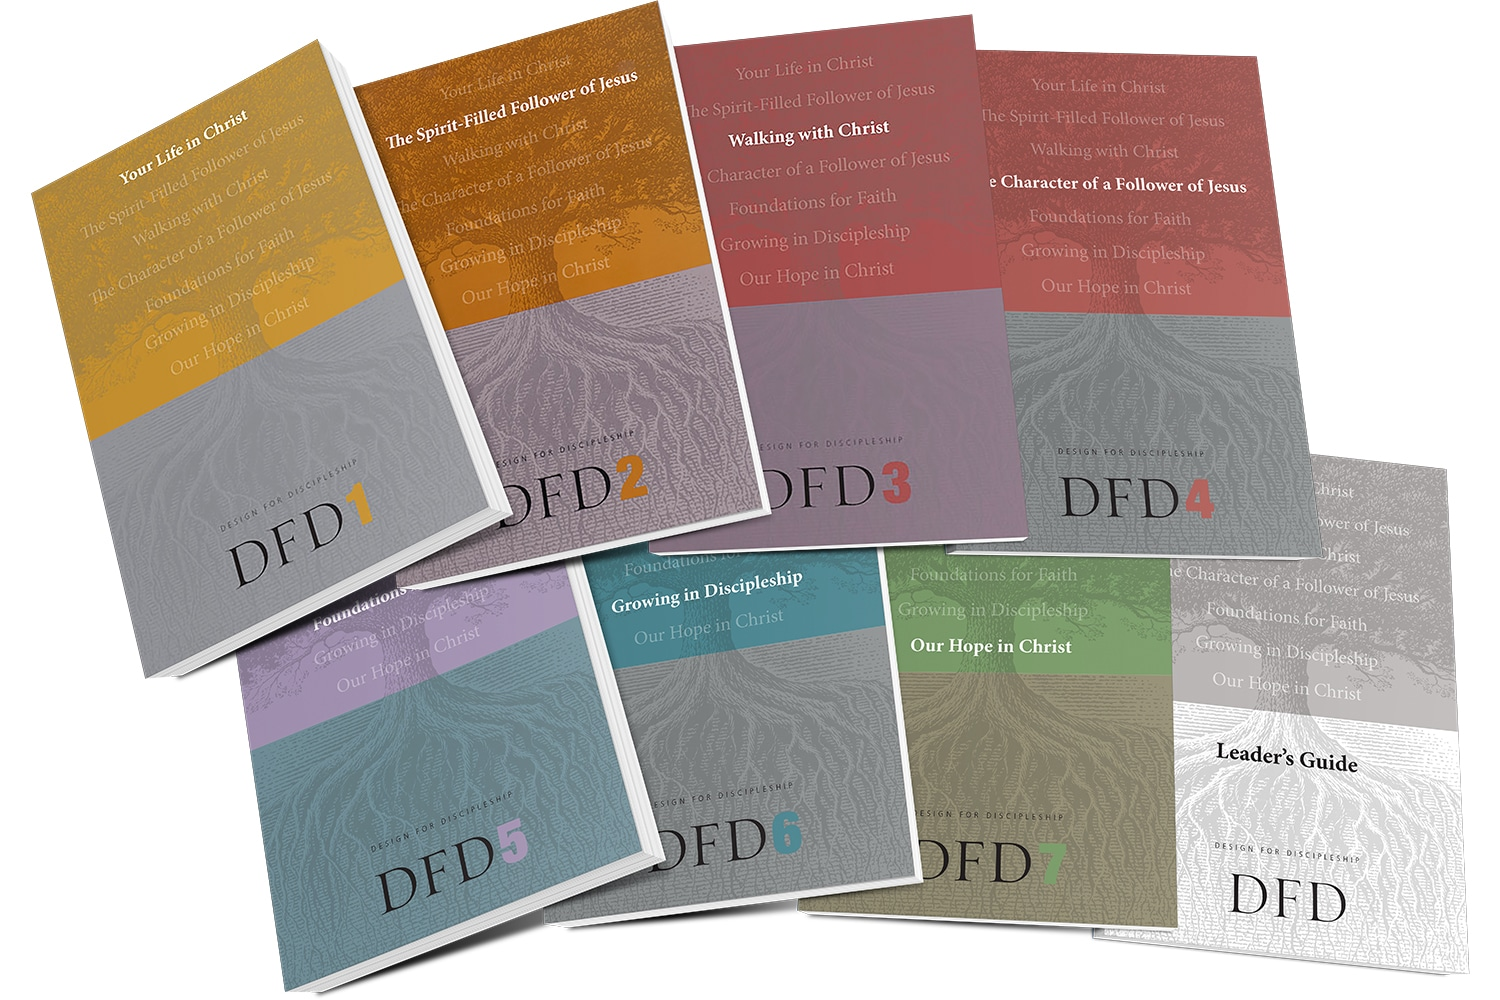 DFD: Design for Discipleship Series | The Navigators